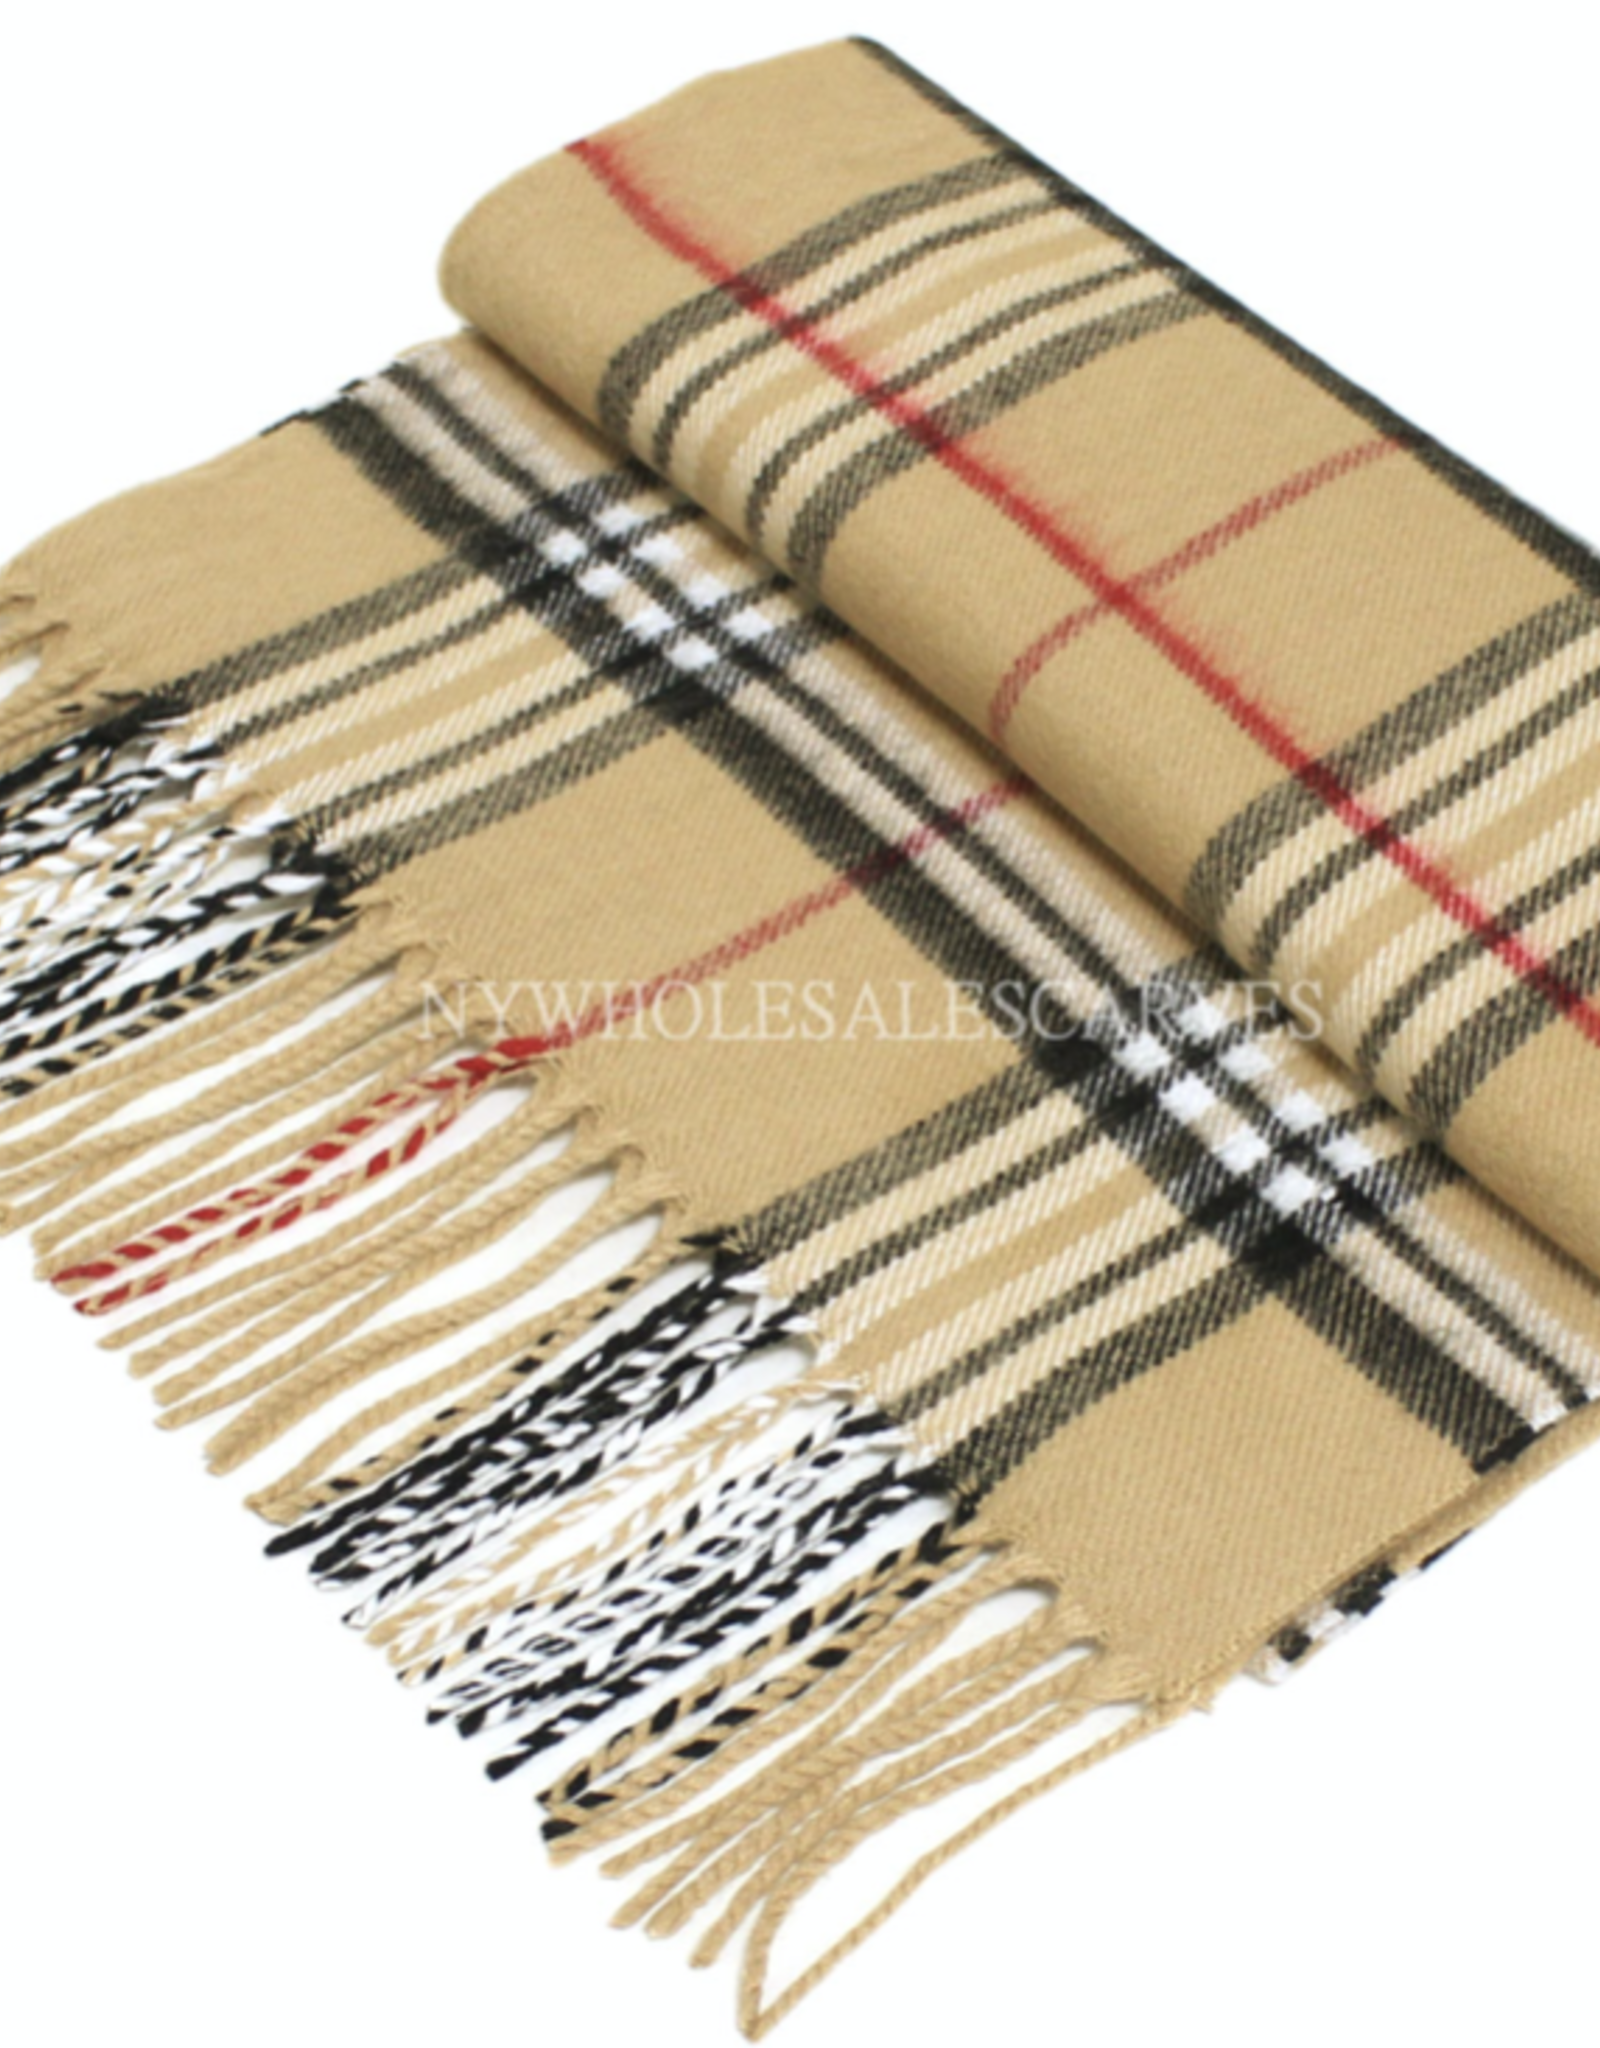 FIRST NY WHOLESALE Cashmere Feel Scarf - Camel/Red/White/Black